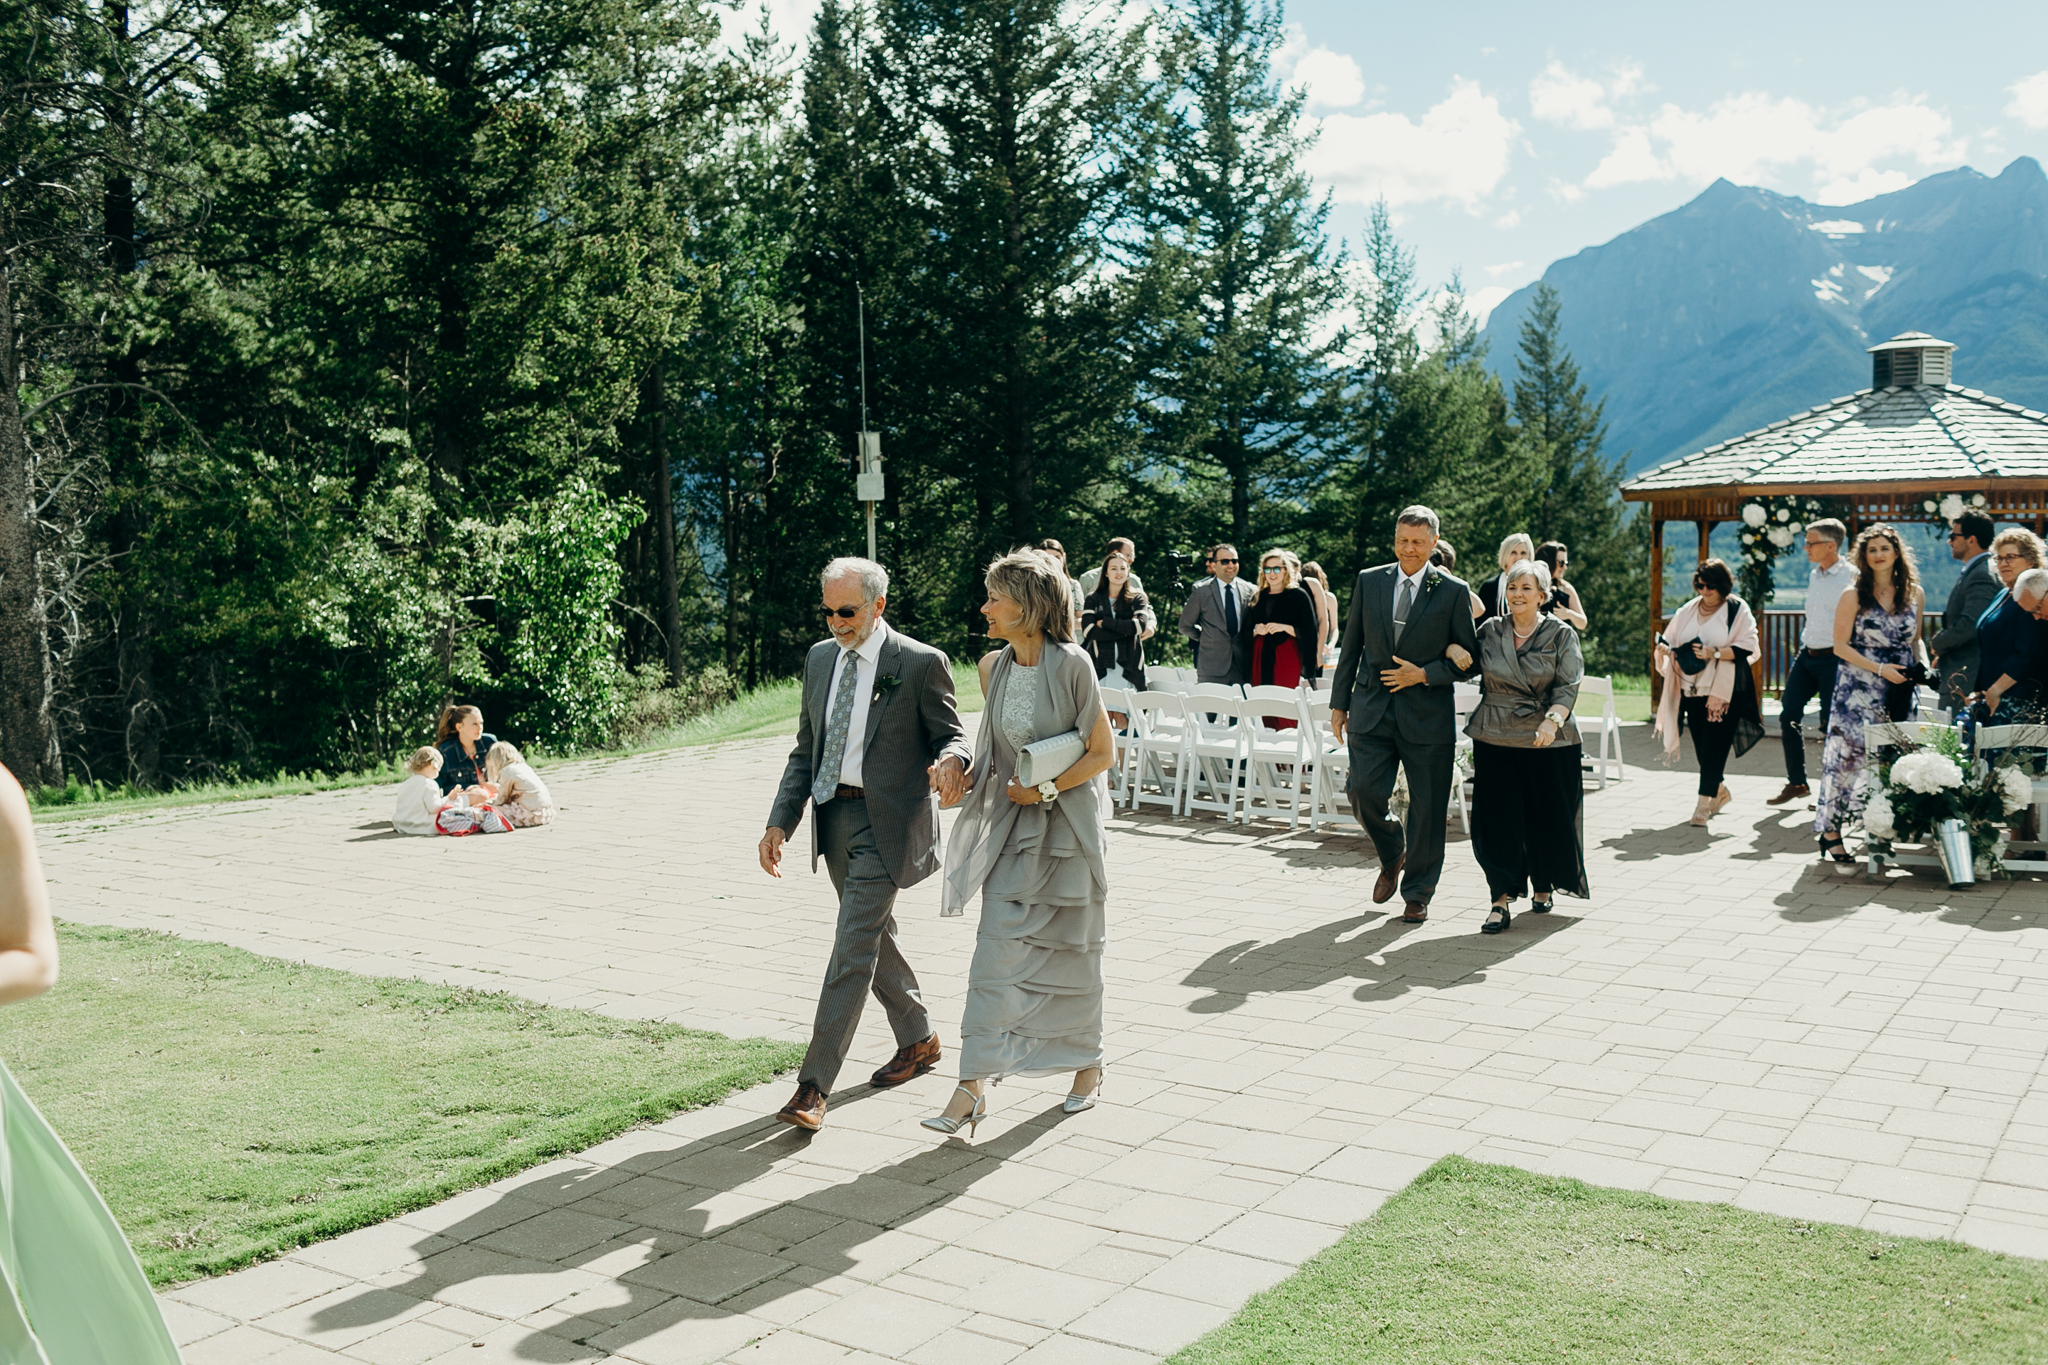 Wedding ceremony at Silvertip Resort rocky mountains Canmore AB destination wedding